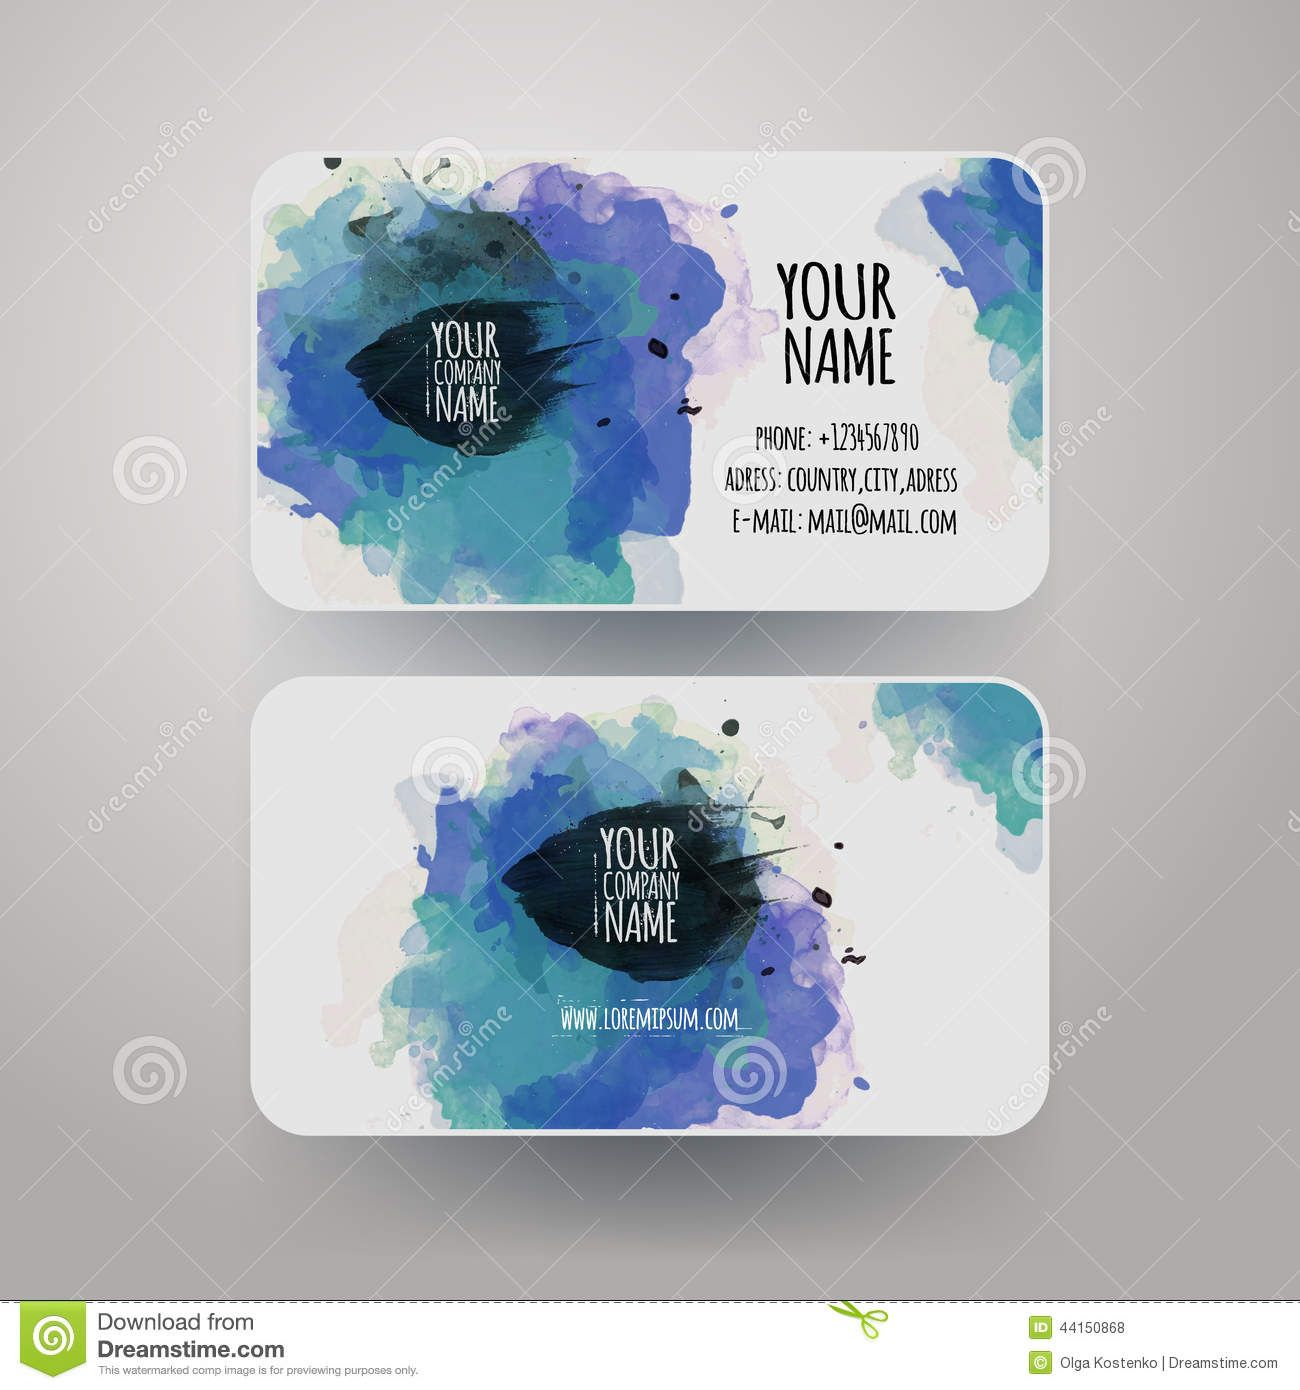 Vector template watercolor business cards download from over 35 vector template watercolor business cards download from over 35 million high quality stock photos magicingreecefo Choice Image